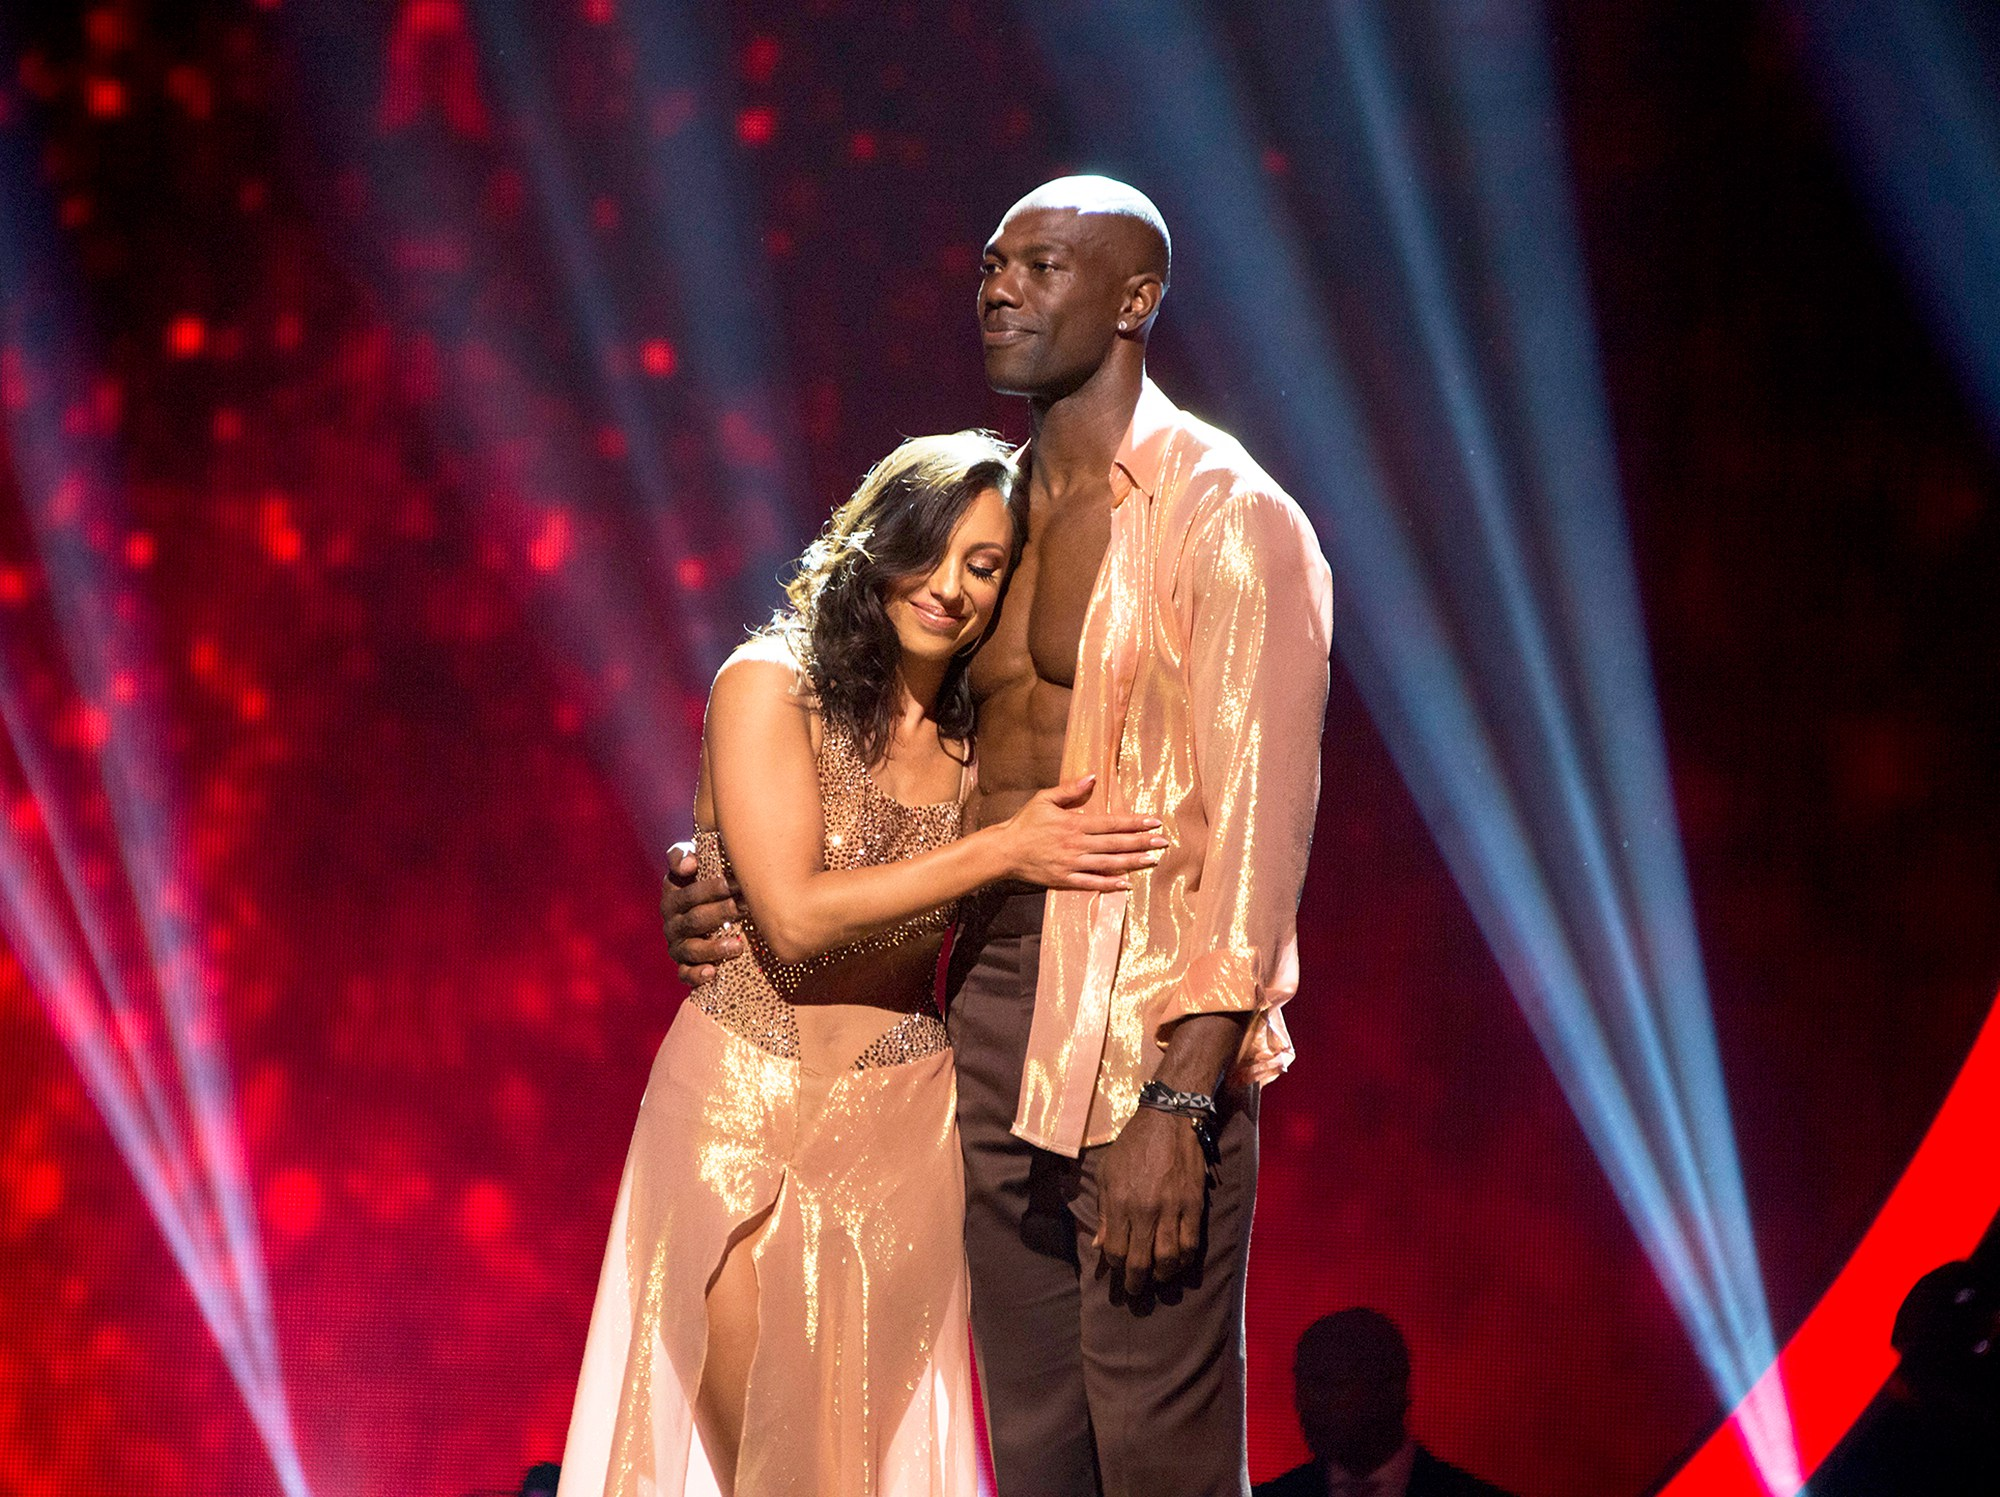 'Dancing With The Stars' partners Cheryl Burke and Terrell Owens